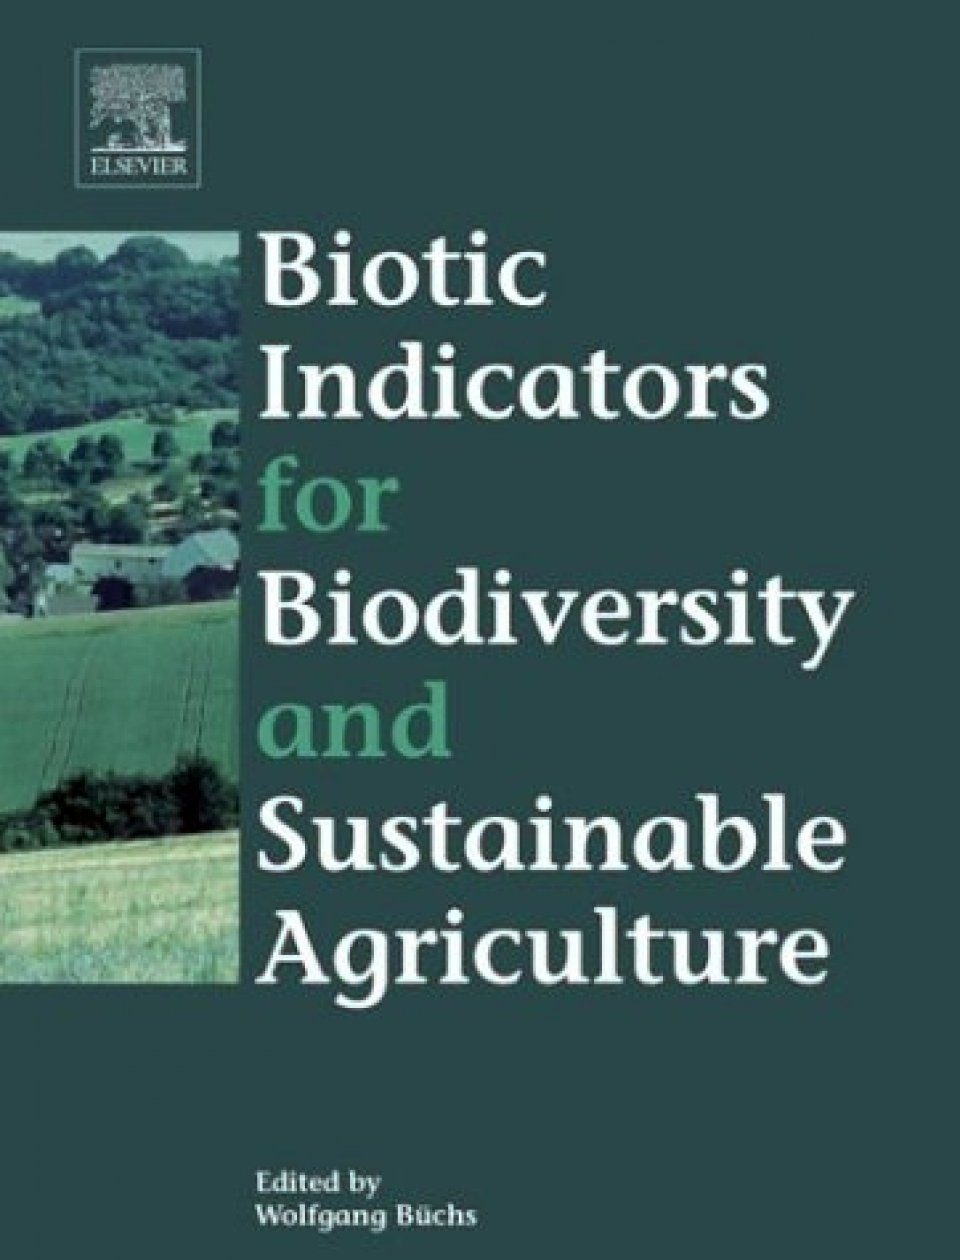 Biotic Indicators for Biodiversity and Sustainable Agriculture